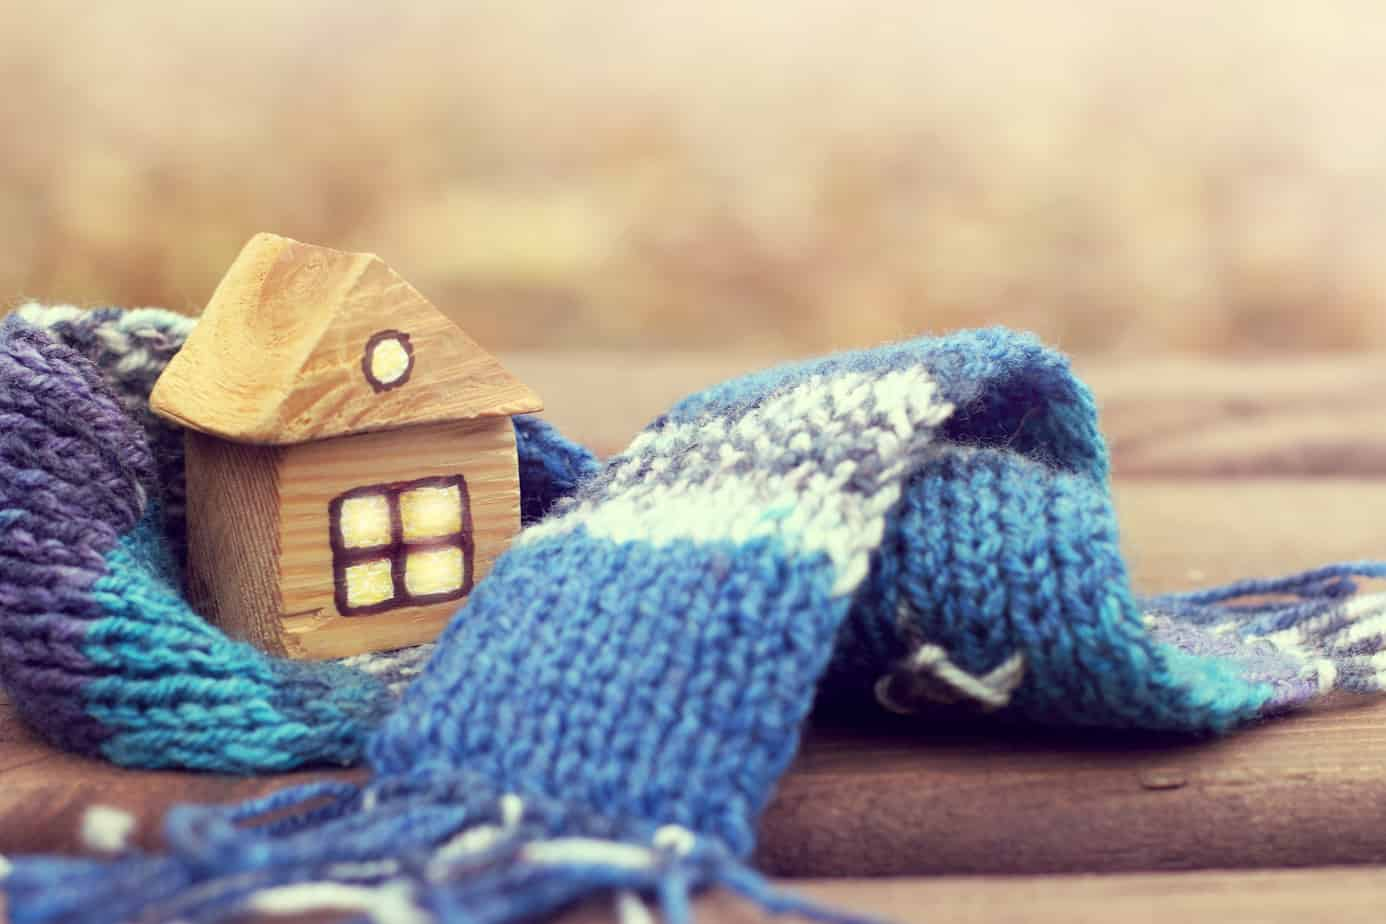 How to prepare your home and garden for winter